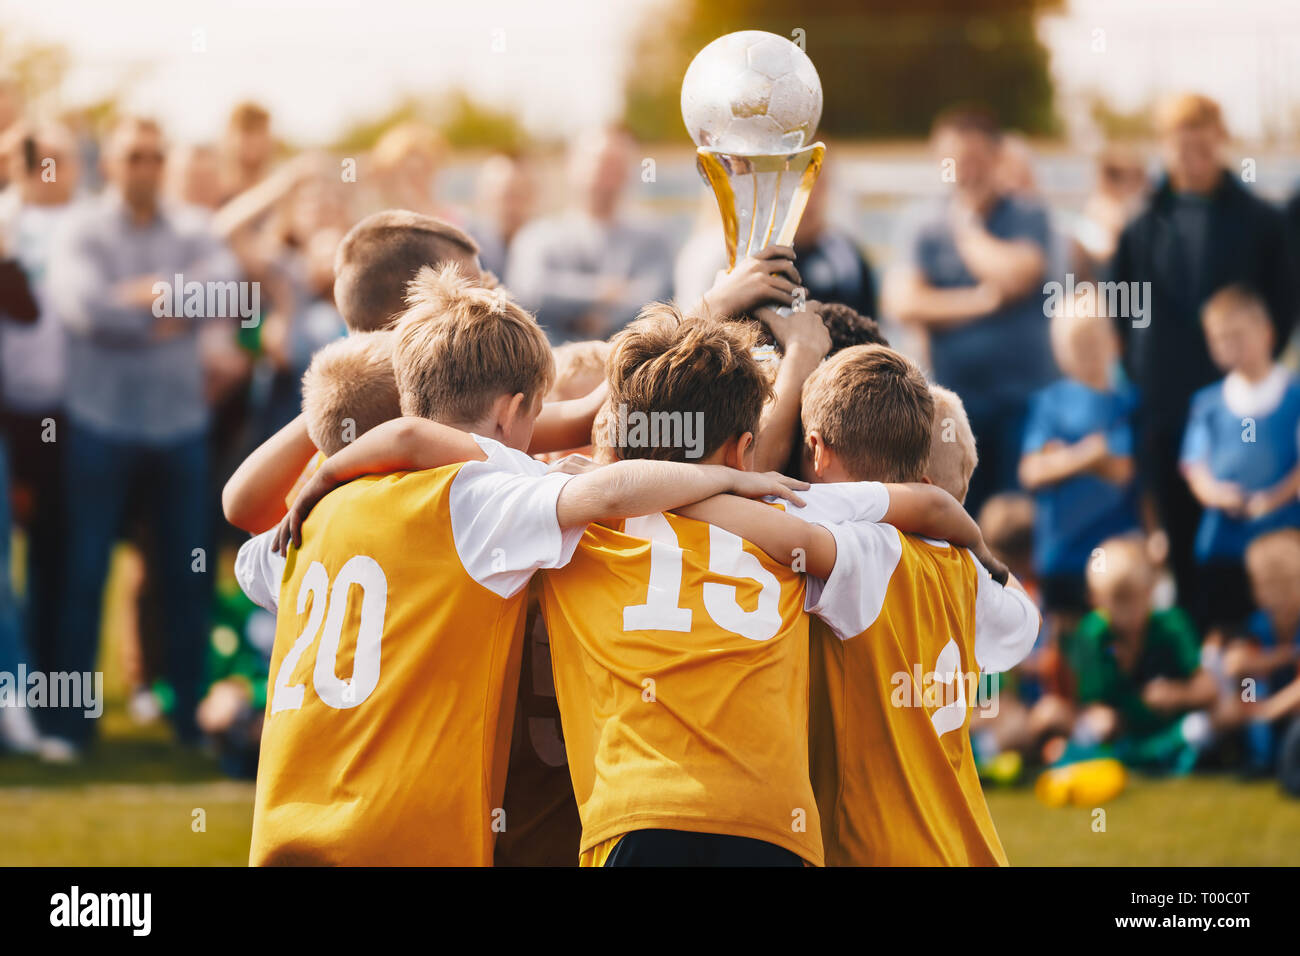 Kids Holding Golden Cup. Boys Winning Soccer Championship. Children Raising Trophy to the Sky in Sunny Summer Day. Football Champion Team Stock Photo